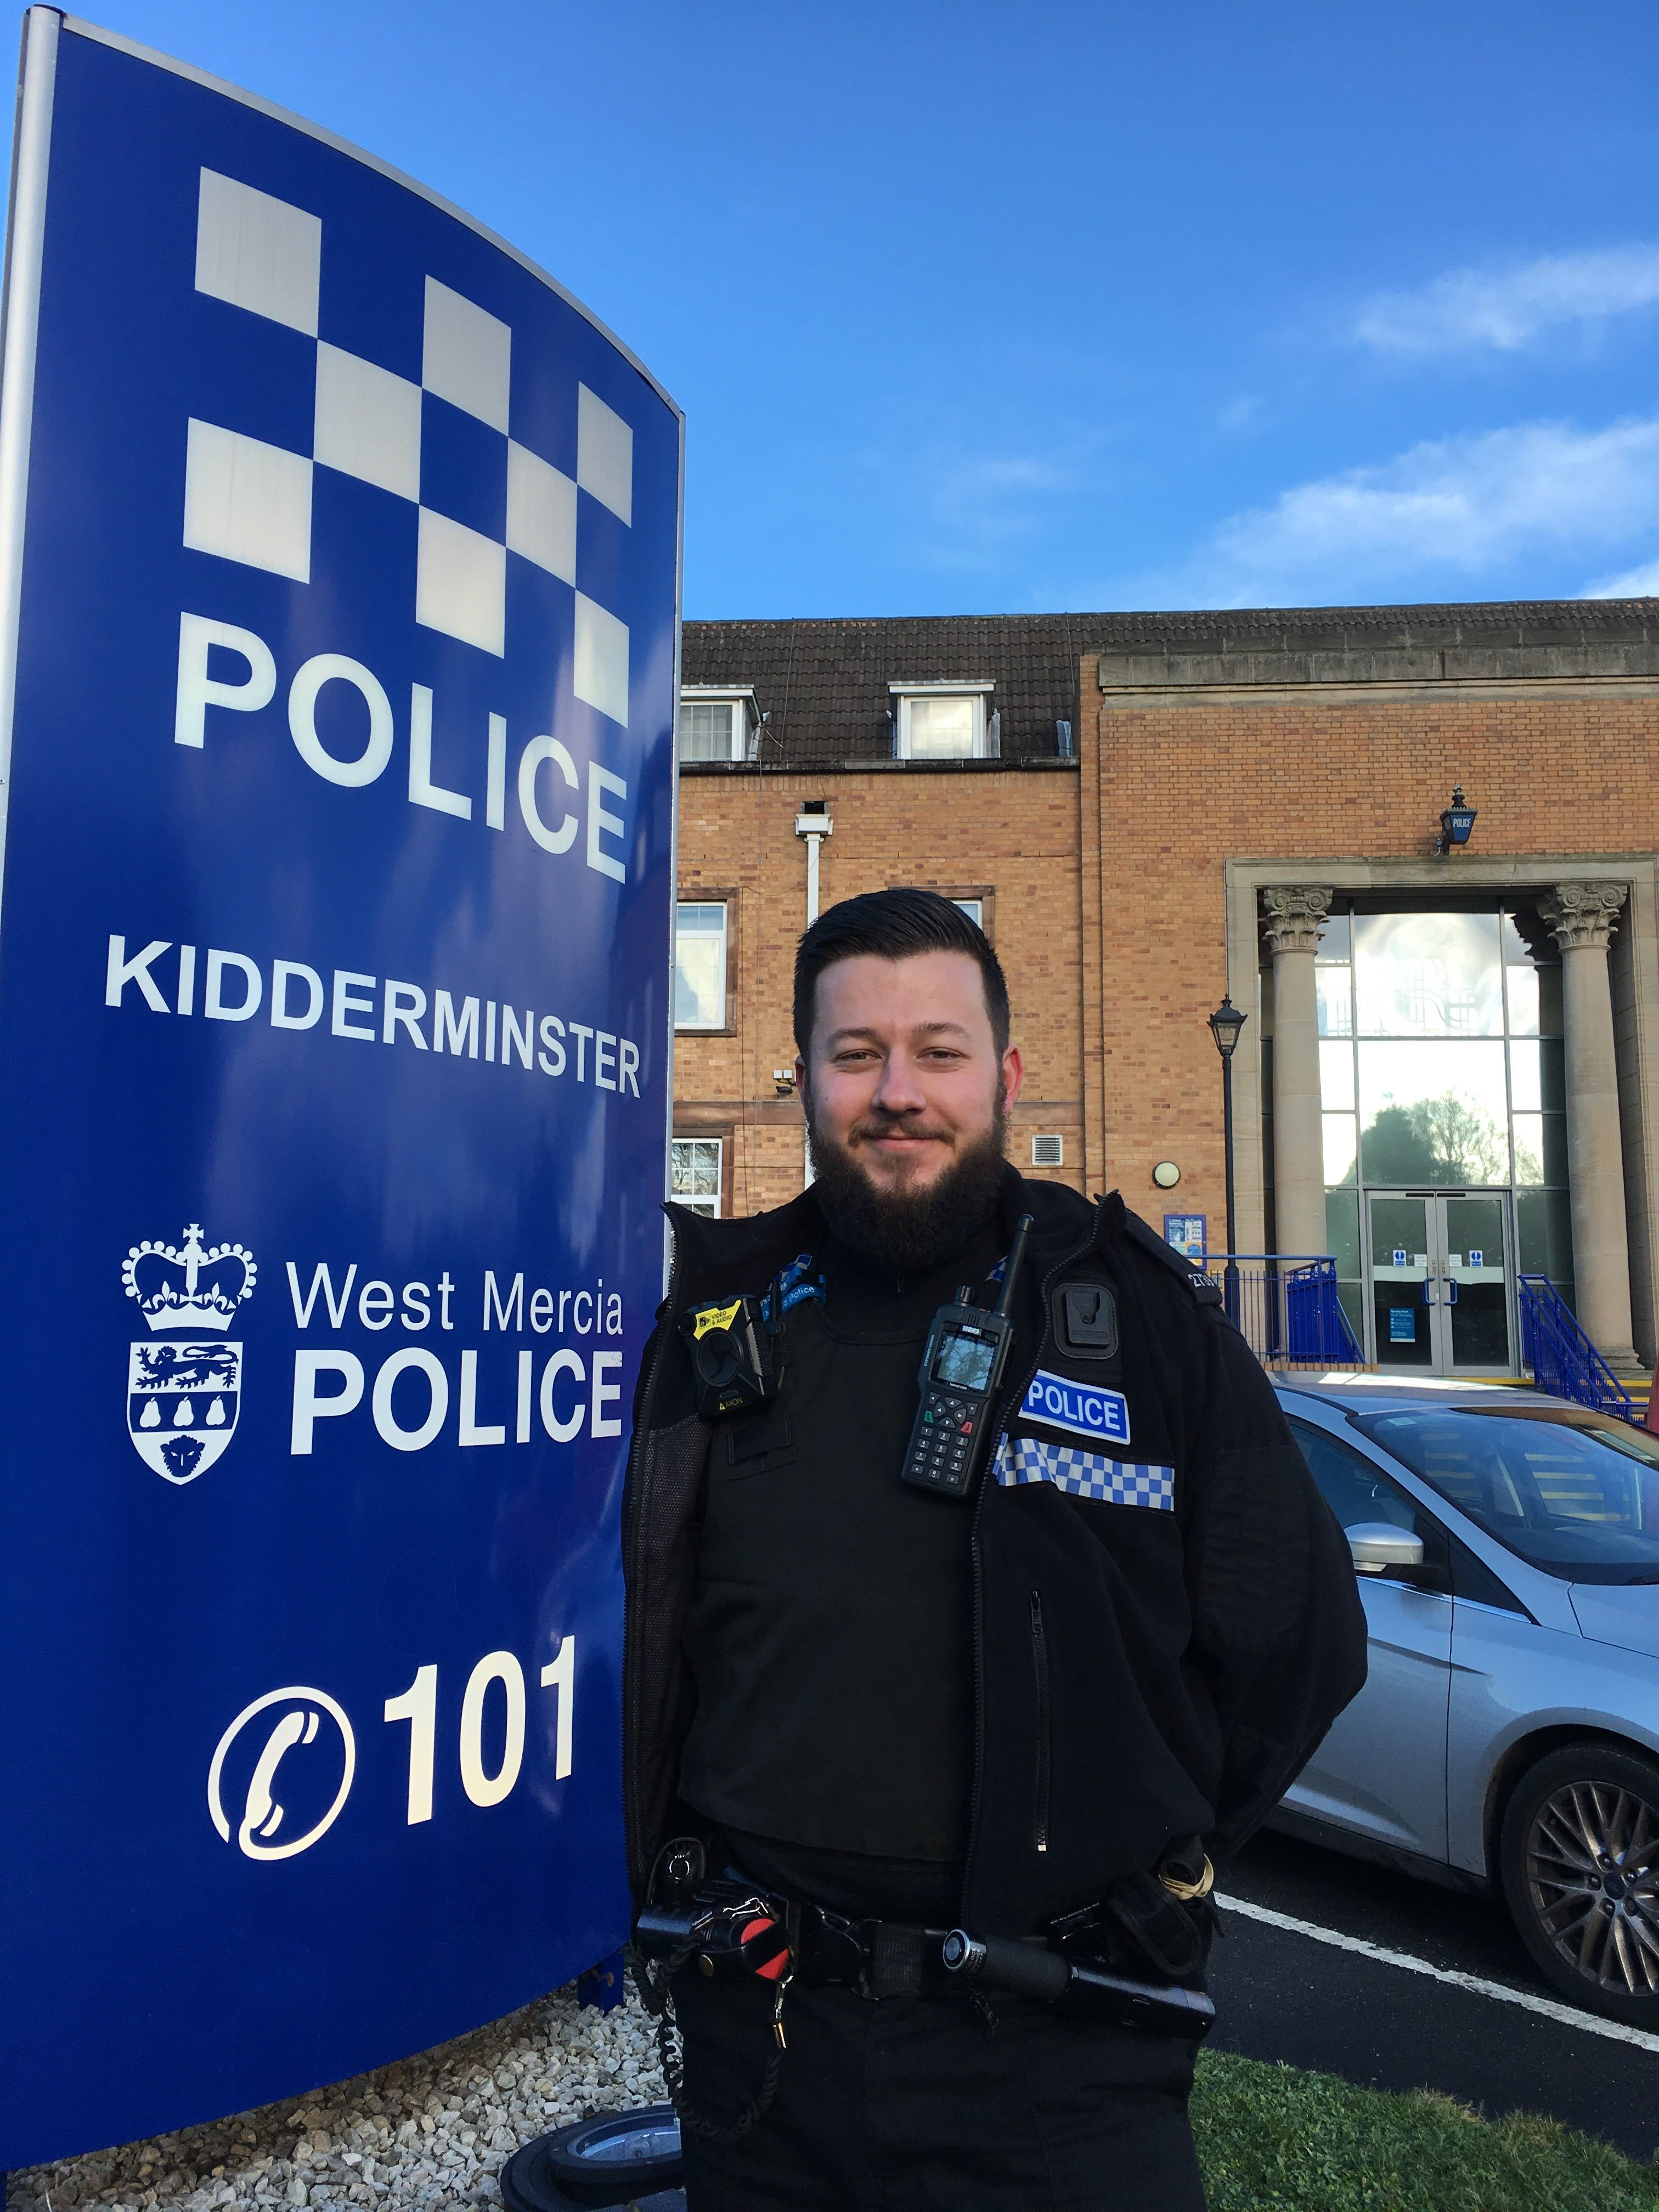 Male police officer with beard stood in uniform and smiling in front of the West Mercia Police Kidderminster sign